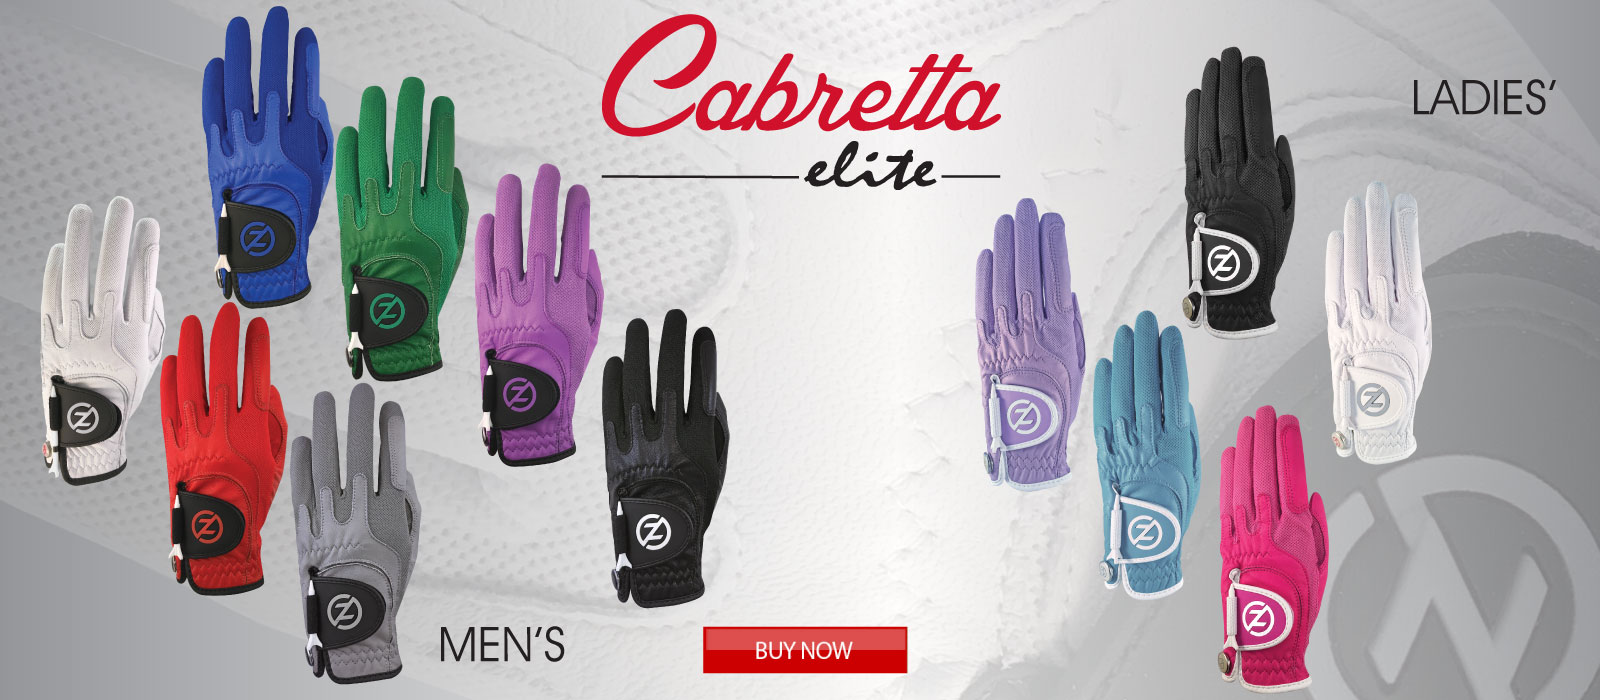 Cabretta Elite Golf Gloves